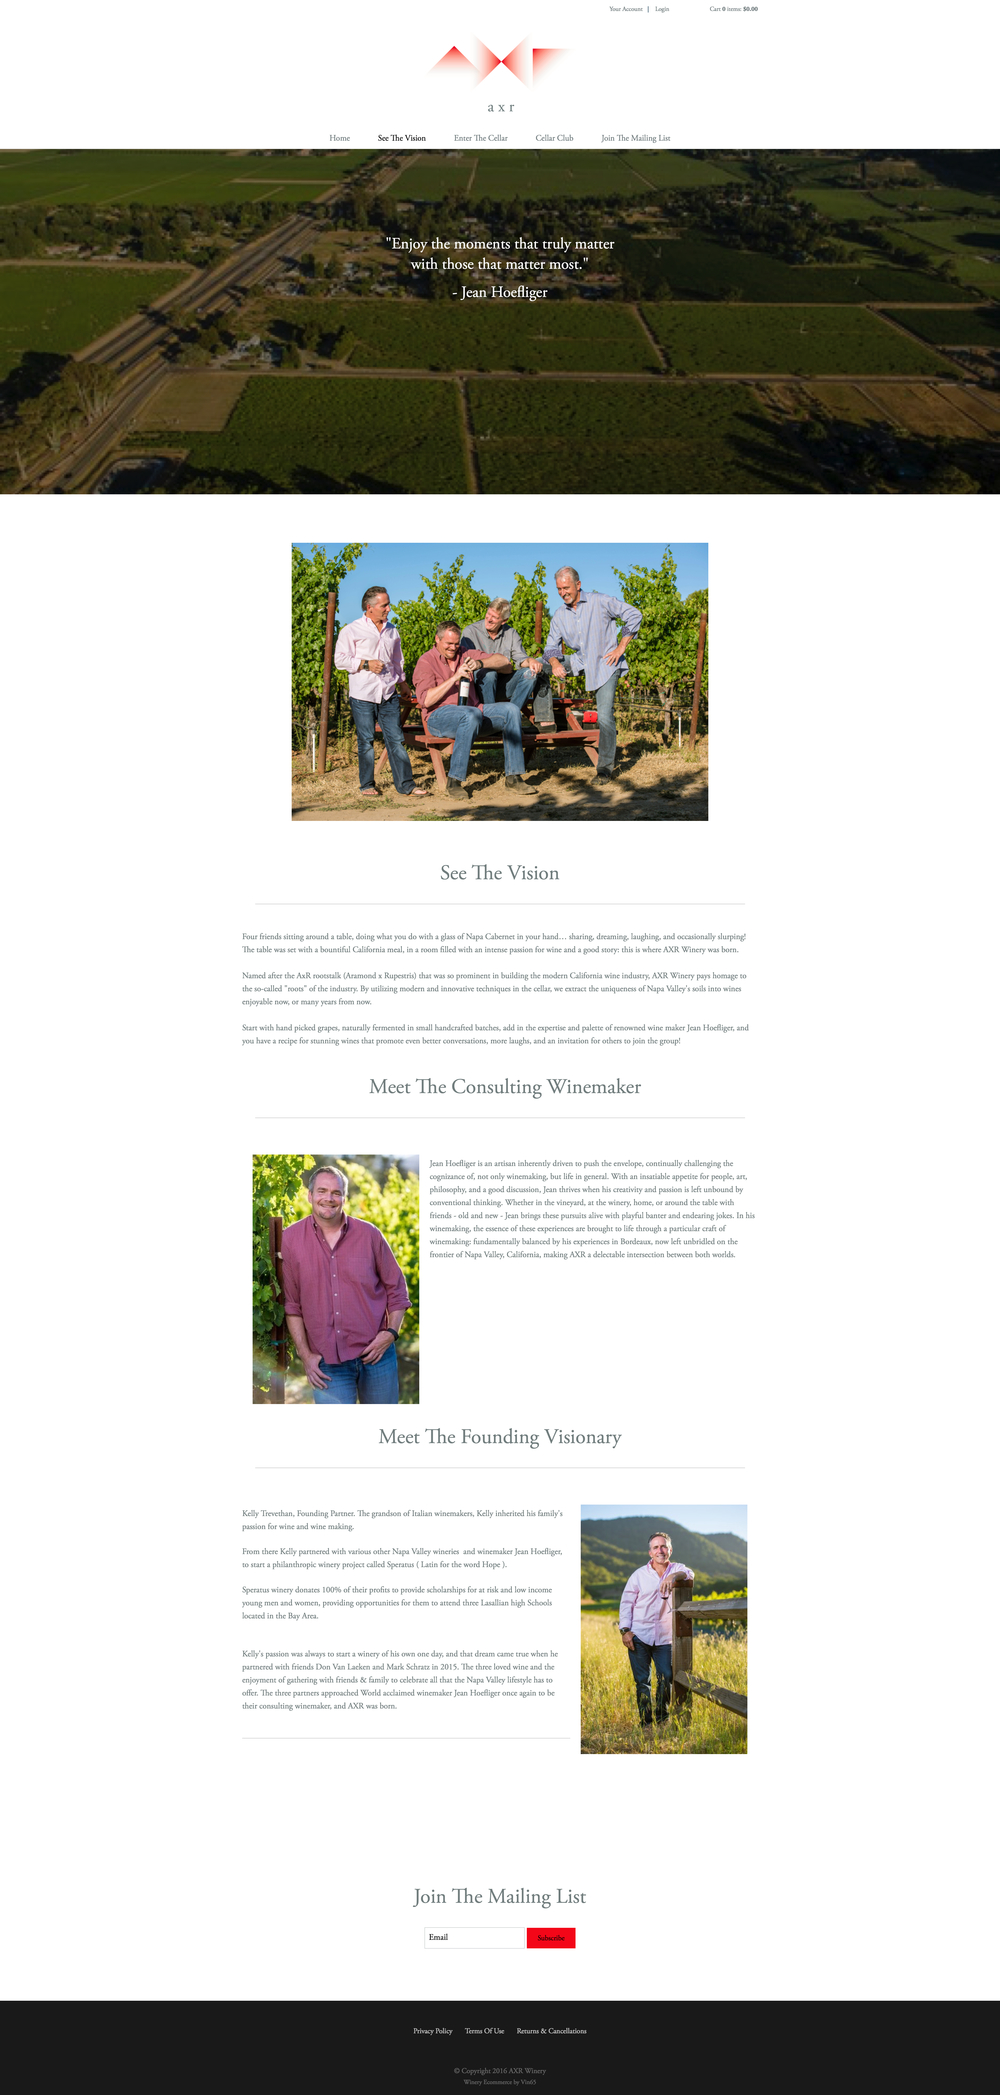 AXR Winery - Content Page (20160816).jpg